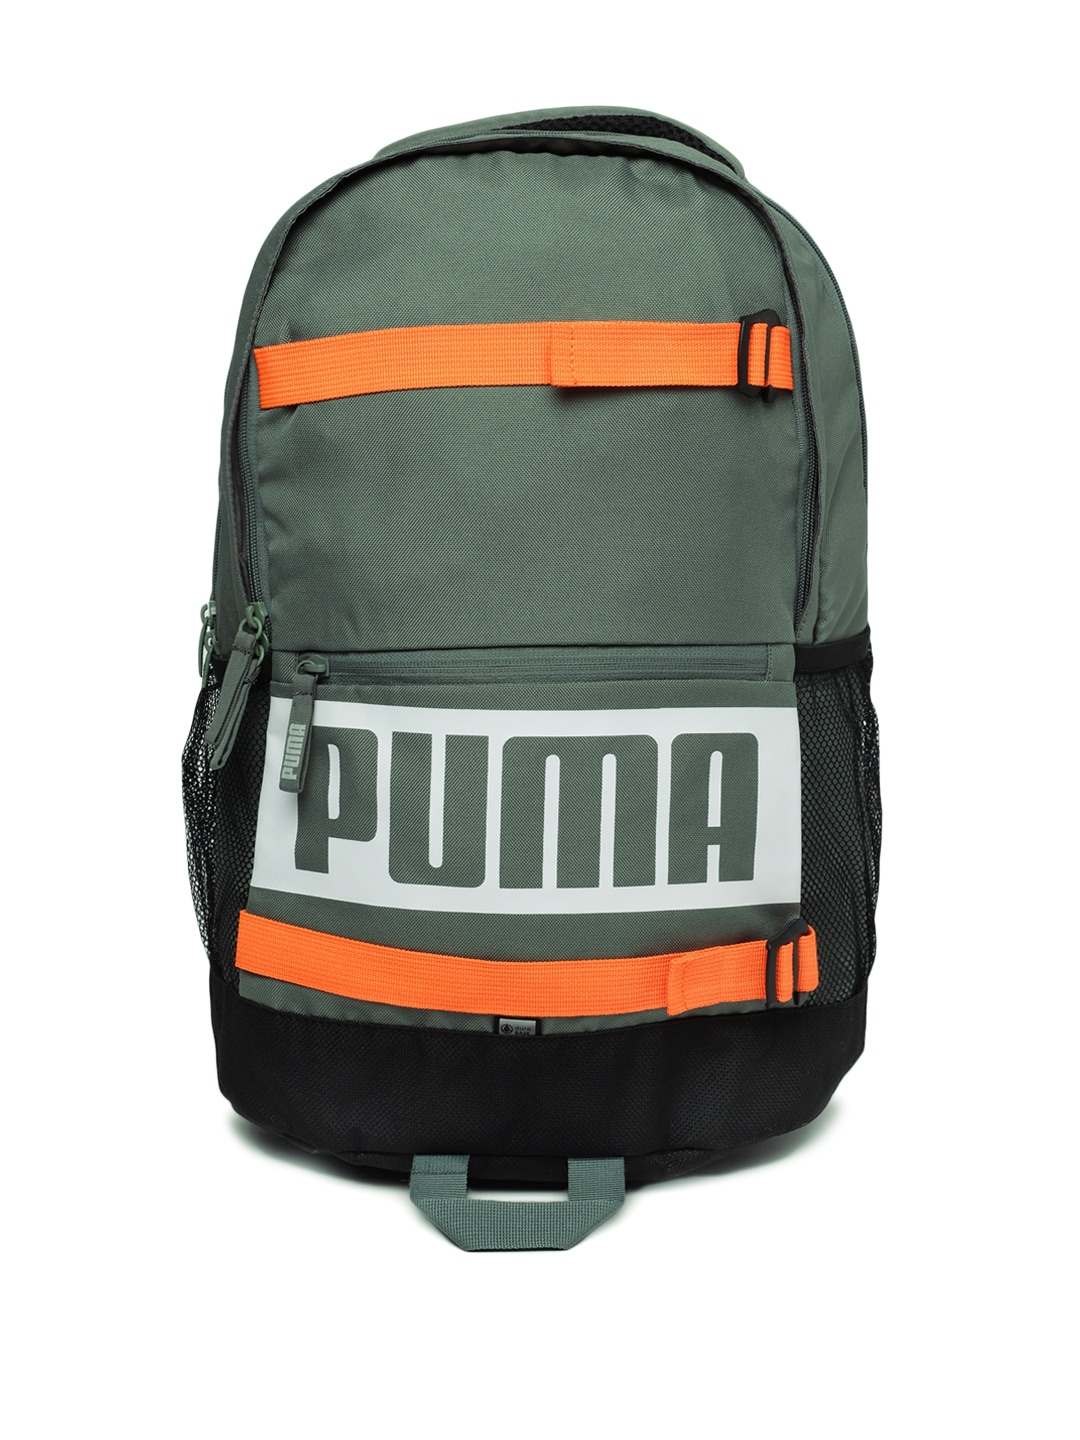 dfc082195a27 Puma Bags For Men - Buy Men s Puma Bags Online from Myntra